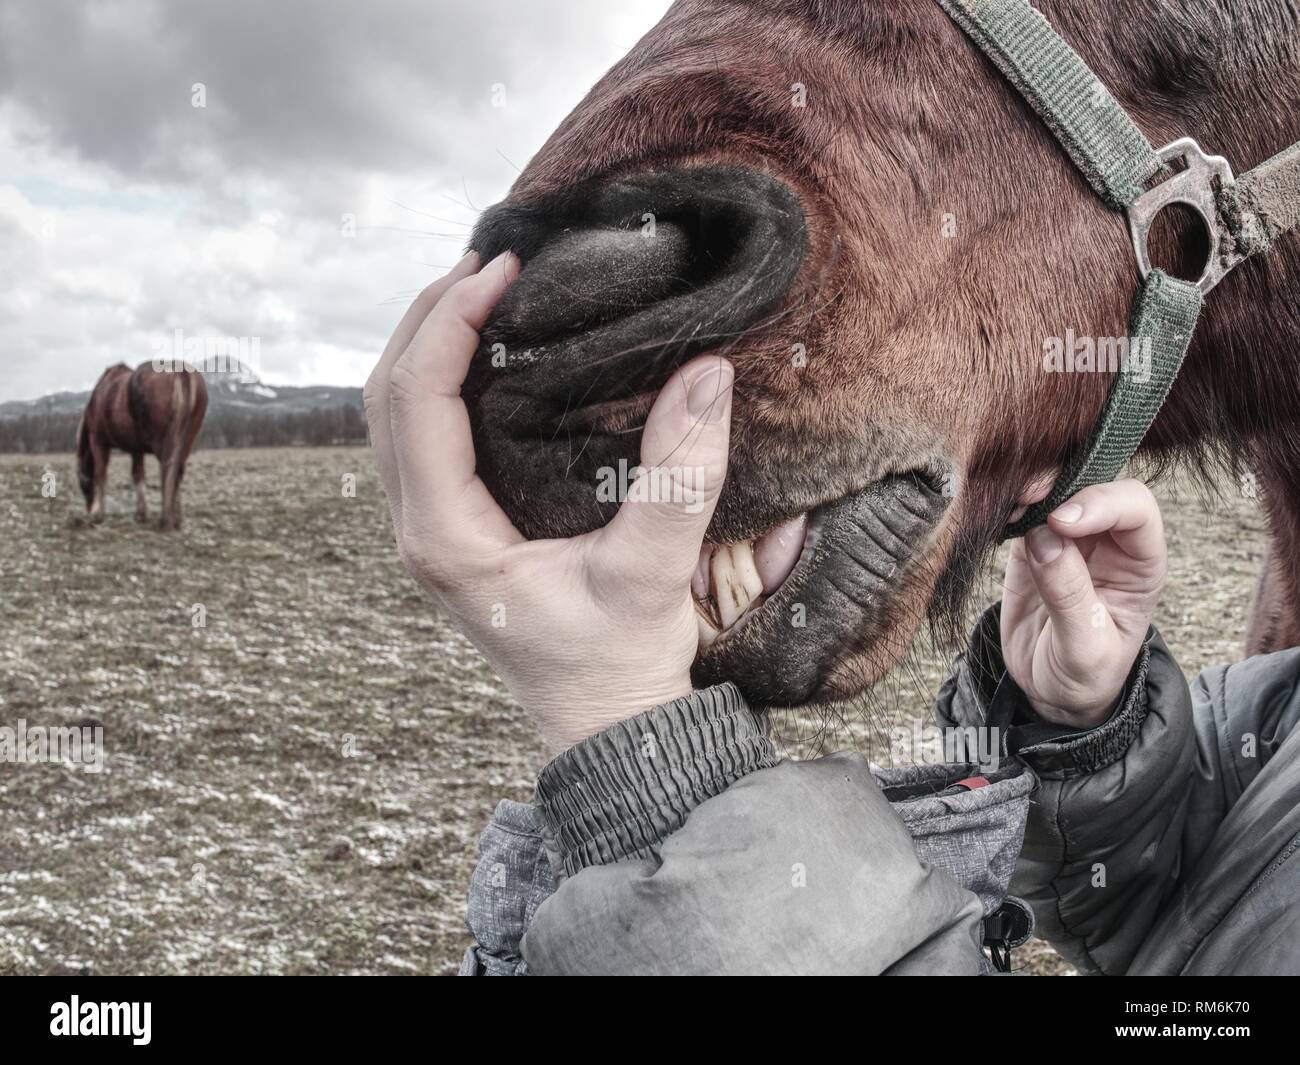 Inspecting horse teeth and health outside. Brown horse head in woman hand. Calm horse baring its teeth. - Stock Image